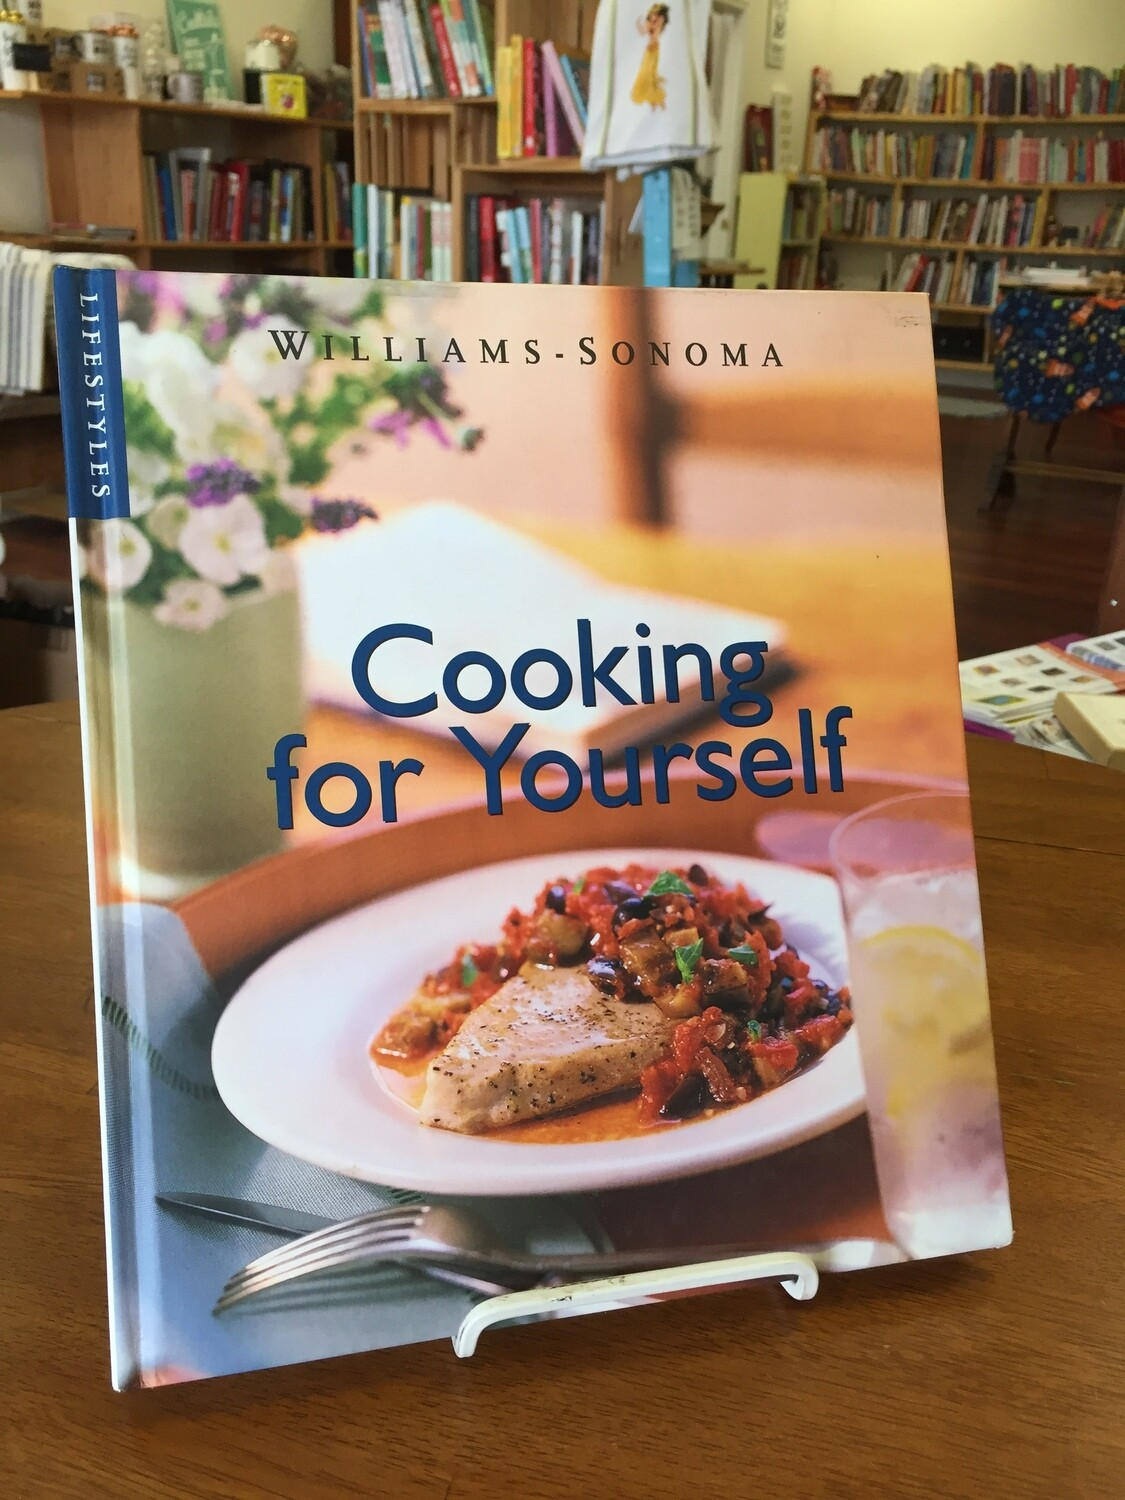 William Sonoma - Cooking For Yourself